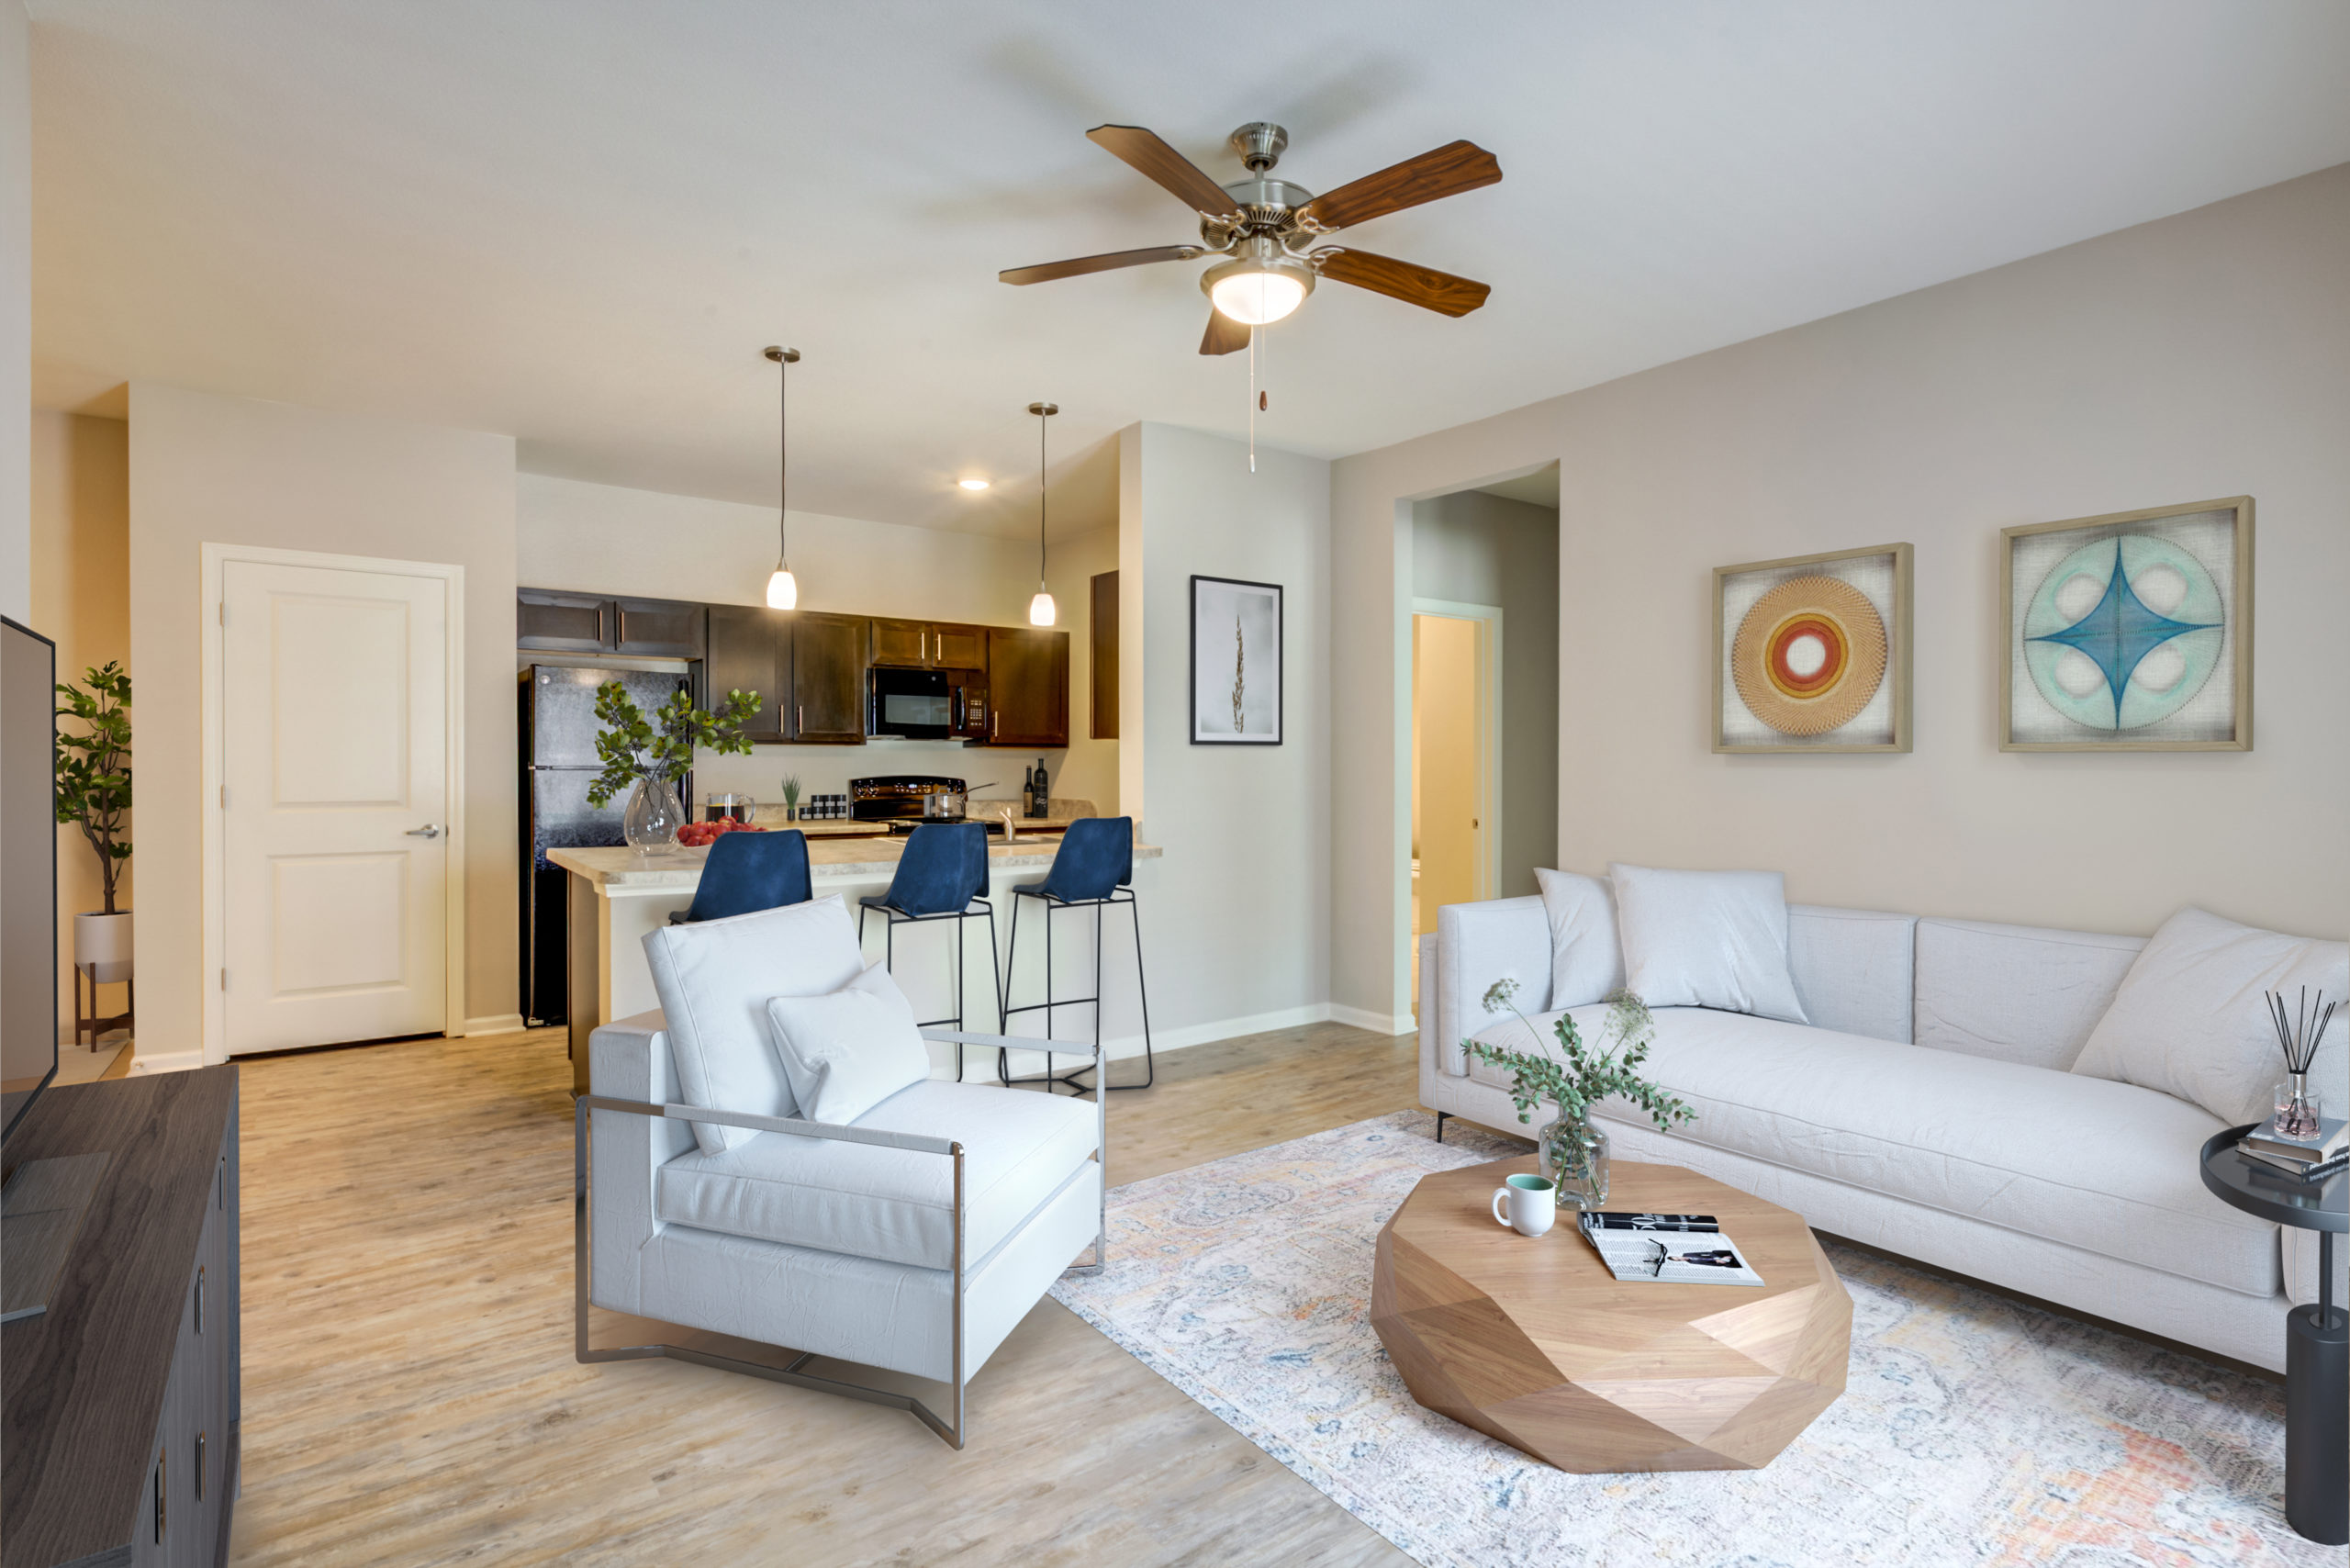 Image of Patriot Pointe in Fort Worth, Texas